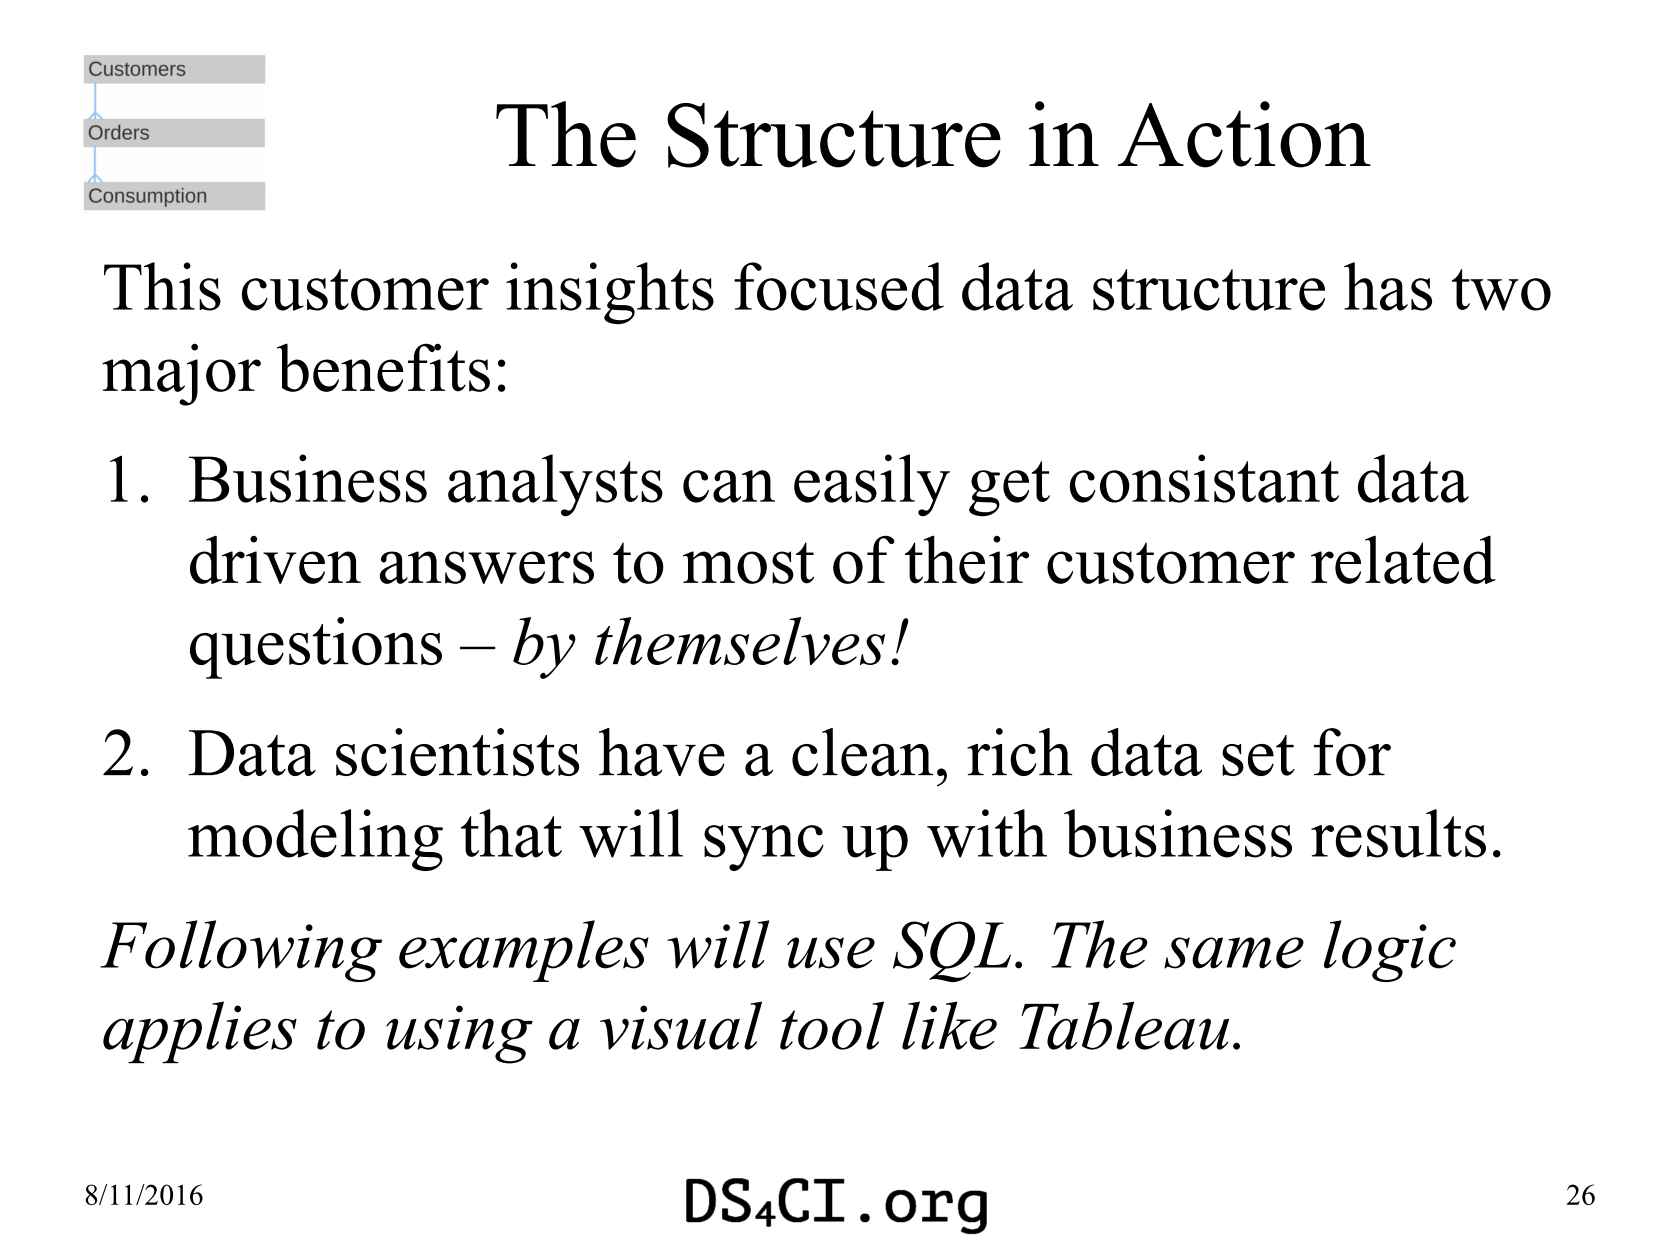 Structuring Data for Self-Serve Customer Insights